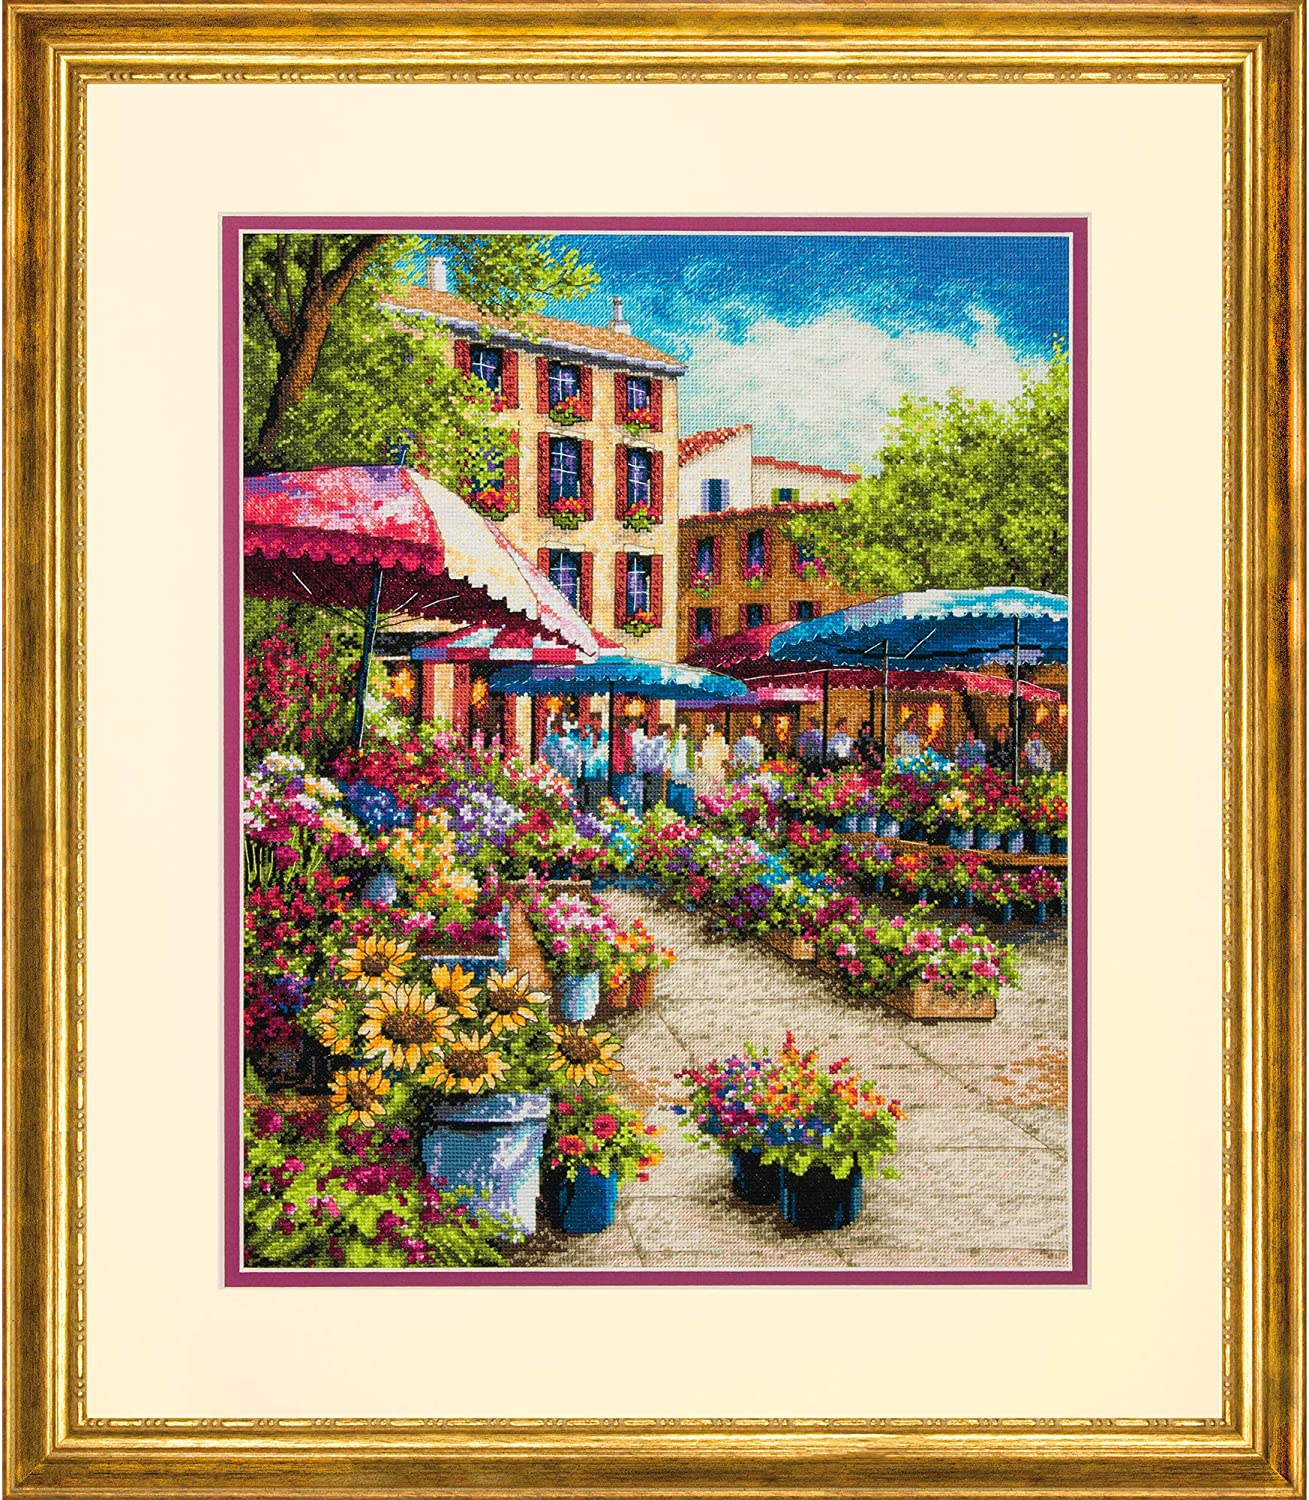 Counted Cross Stitch Kit CHARMING WATERWAY Dimensions Gold Collection